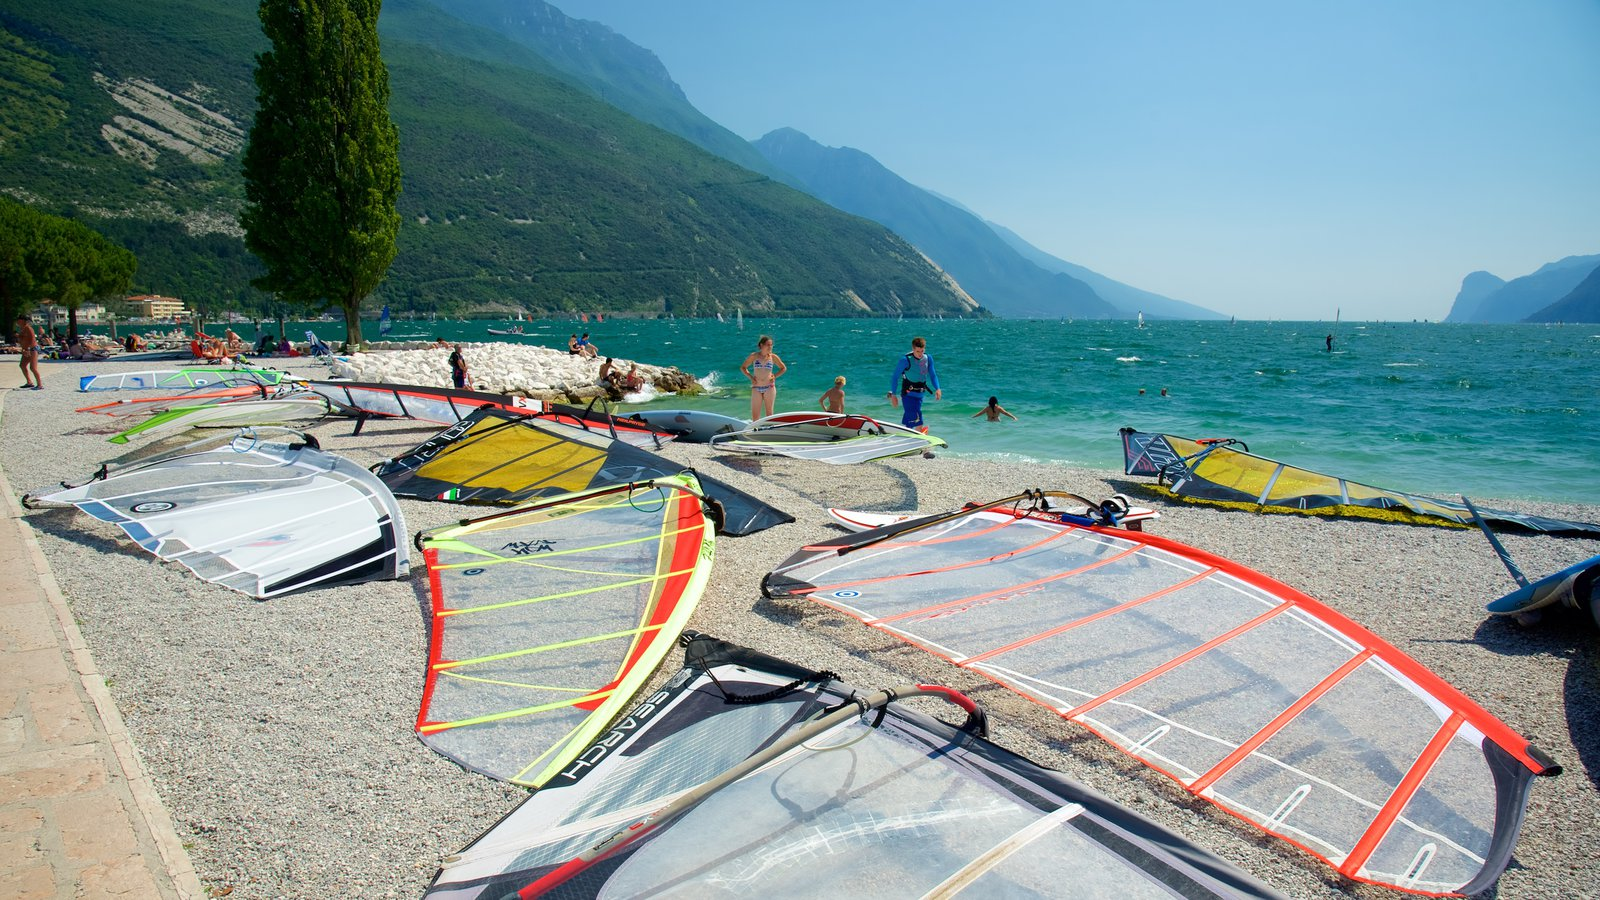 Nago-Torbole featuring a pebble beach and windsurfing as well as a large group of people